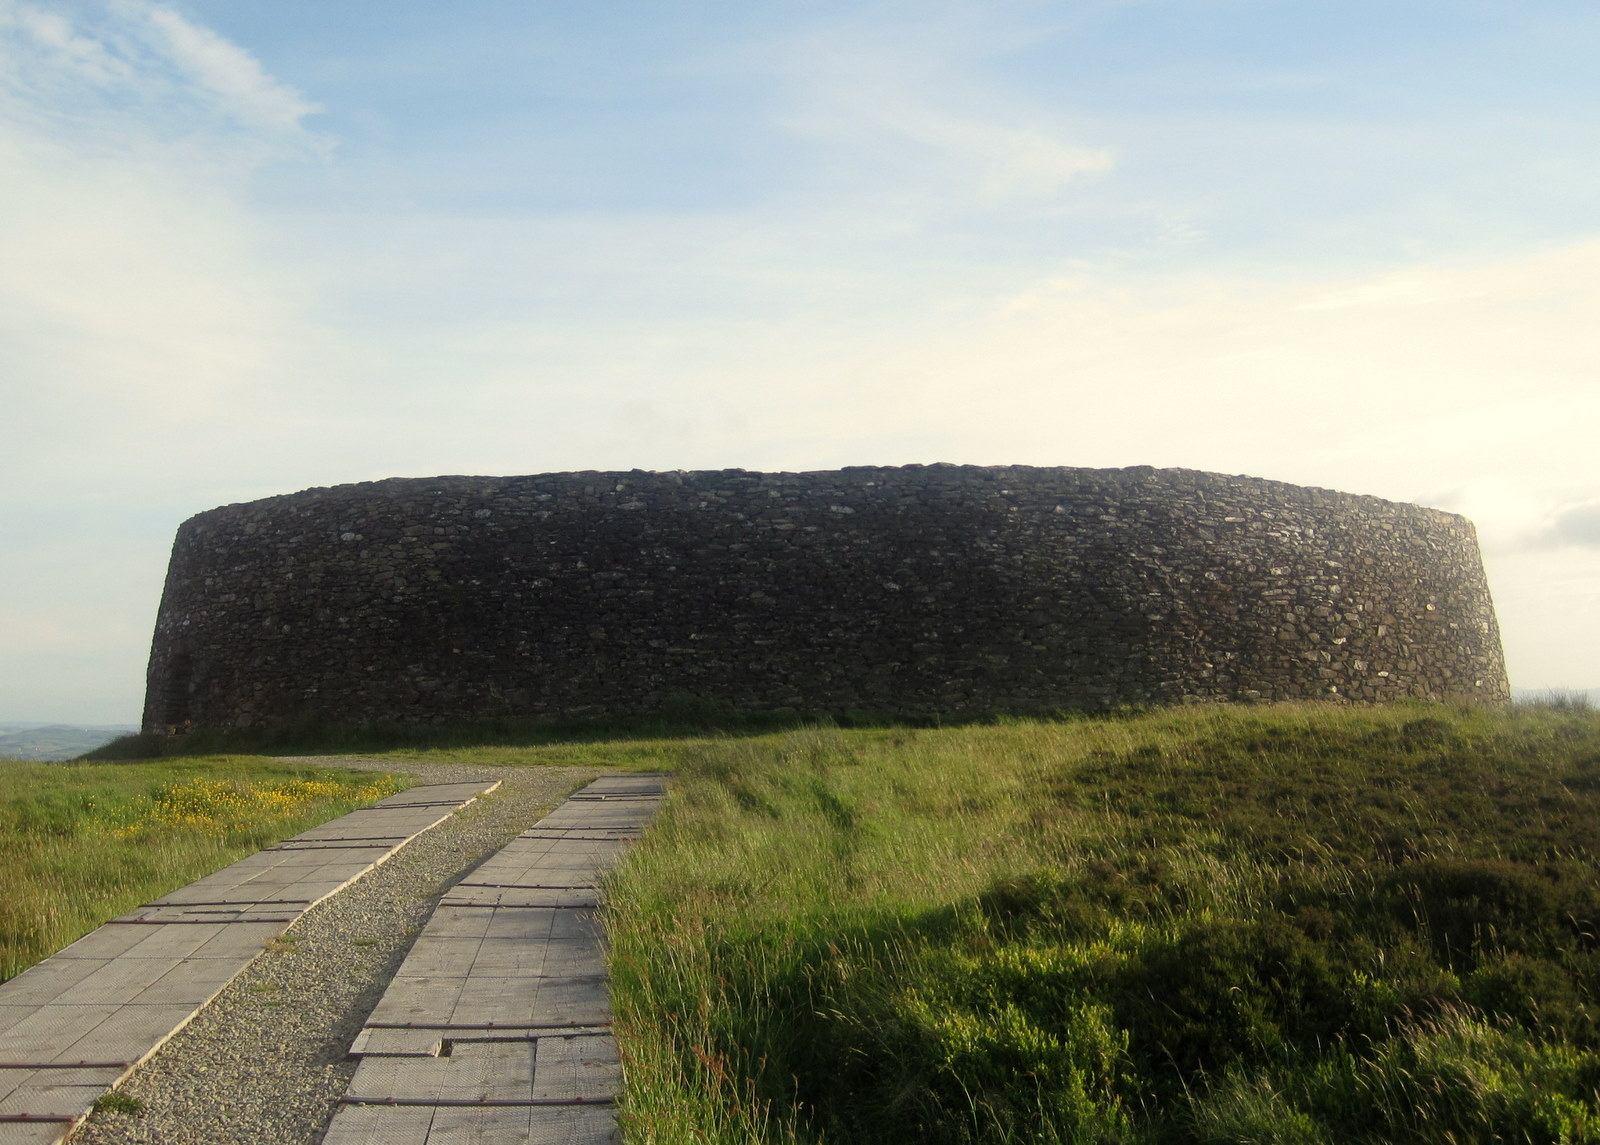 Grianan of Aileach – An Ancient, Stone Ringfort in County Donegal